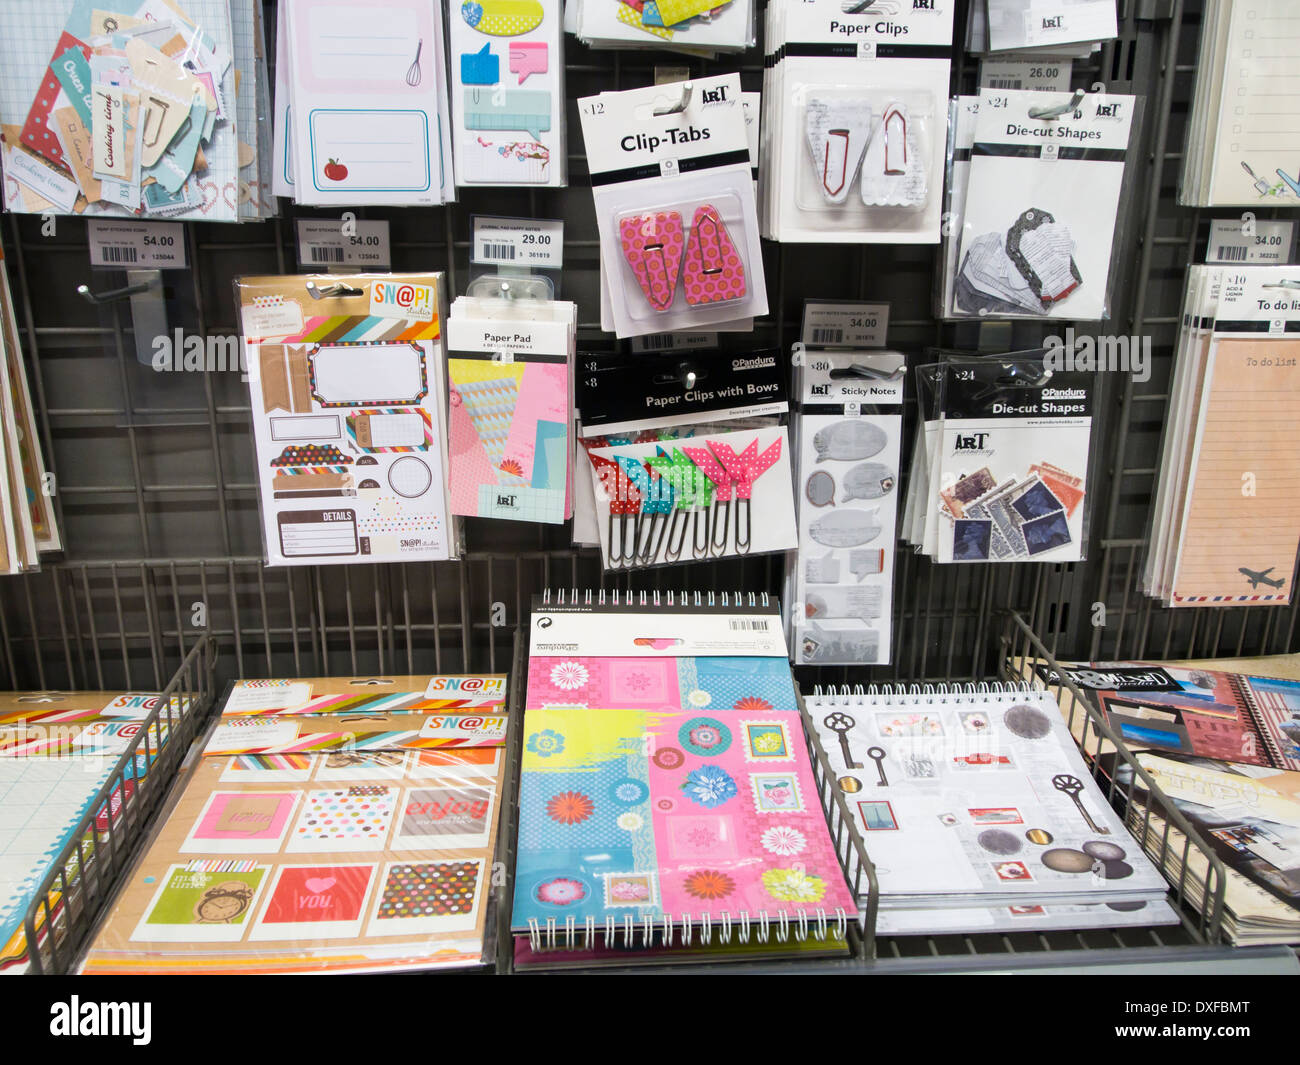 Scrapbook paper display - Decorated Papers And Other Items For Scrapbooking On Display In A Hobby And Craft Shop In Oslo Norway